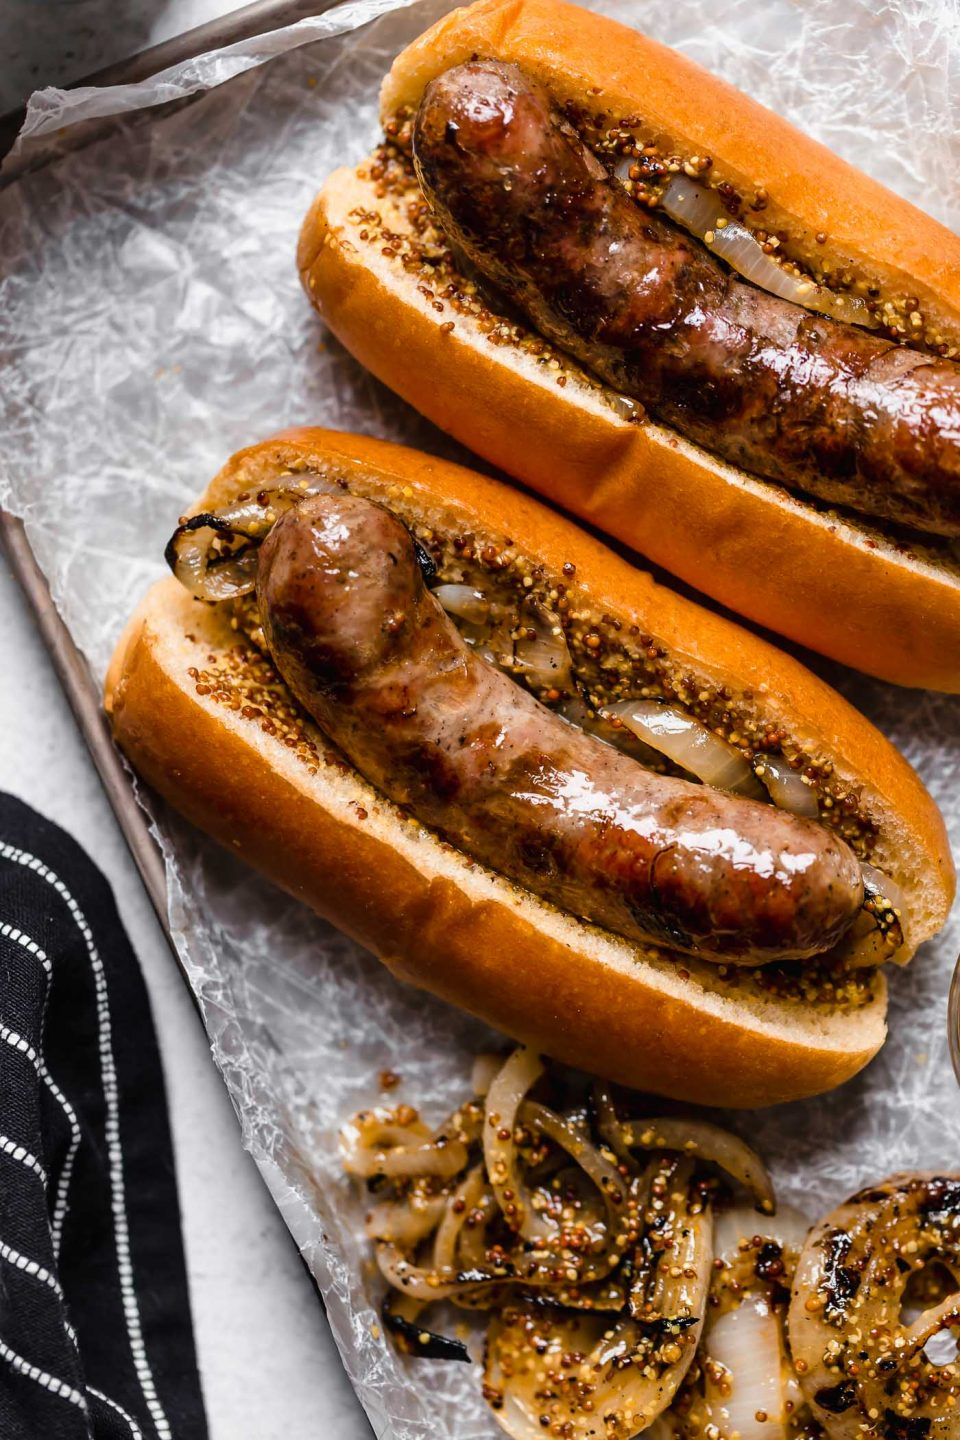 2 beer brats in brioche buns with mustard & grilled onions. The brats sit atop a piece of while parchment paper on a small metal baking sheet. The baking sheet sits next to a black & white striped napkin on a white surface.